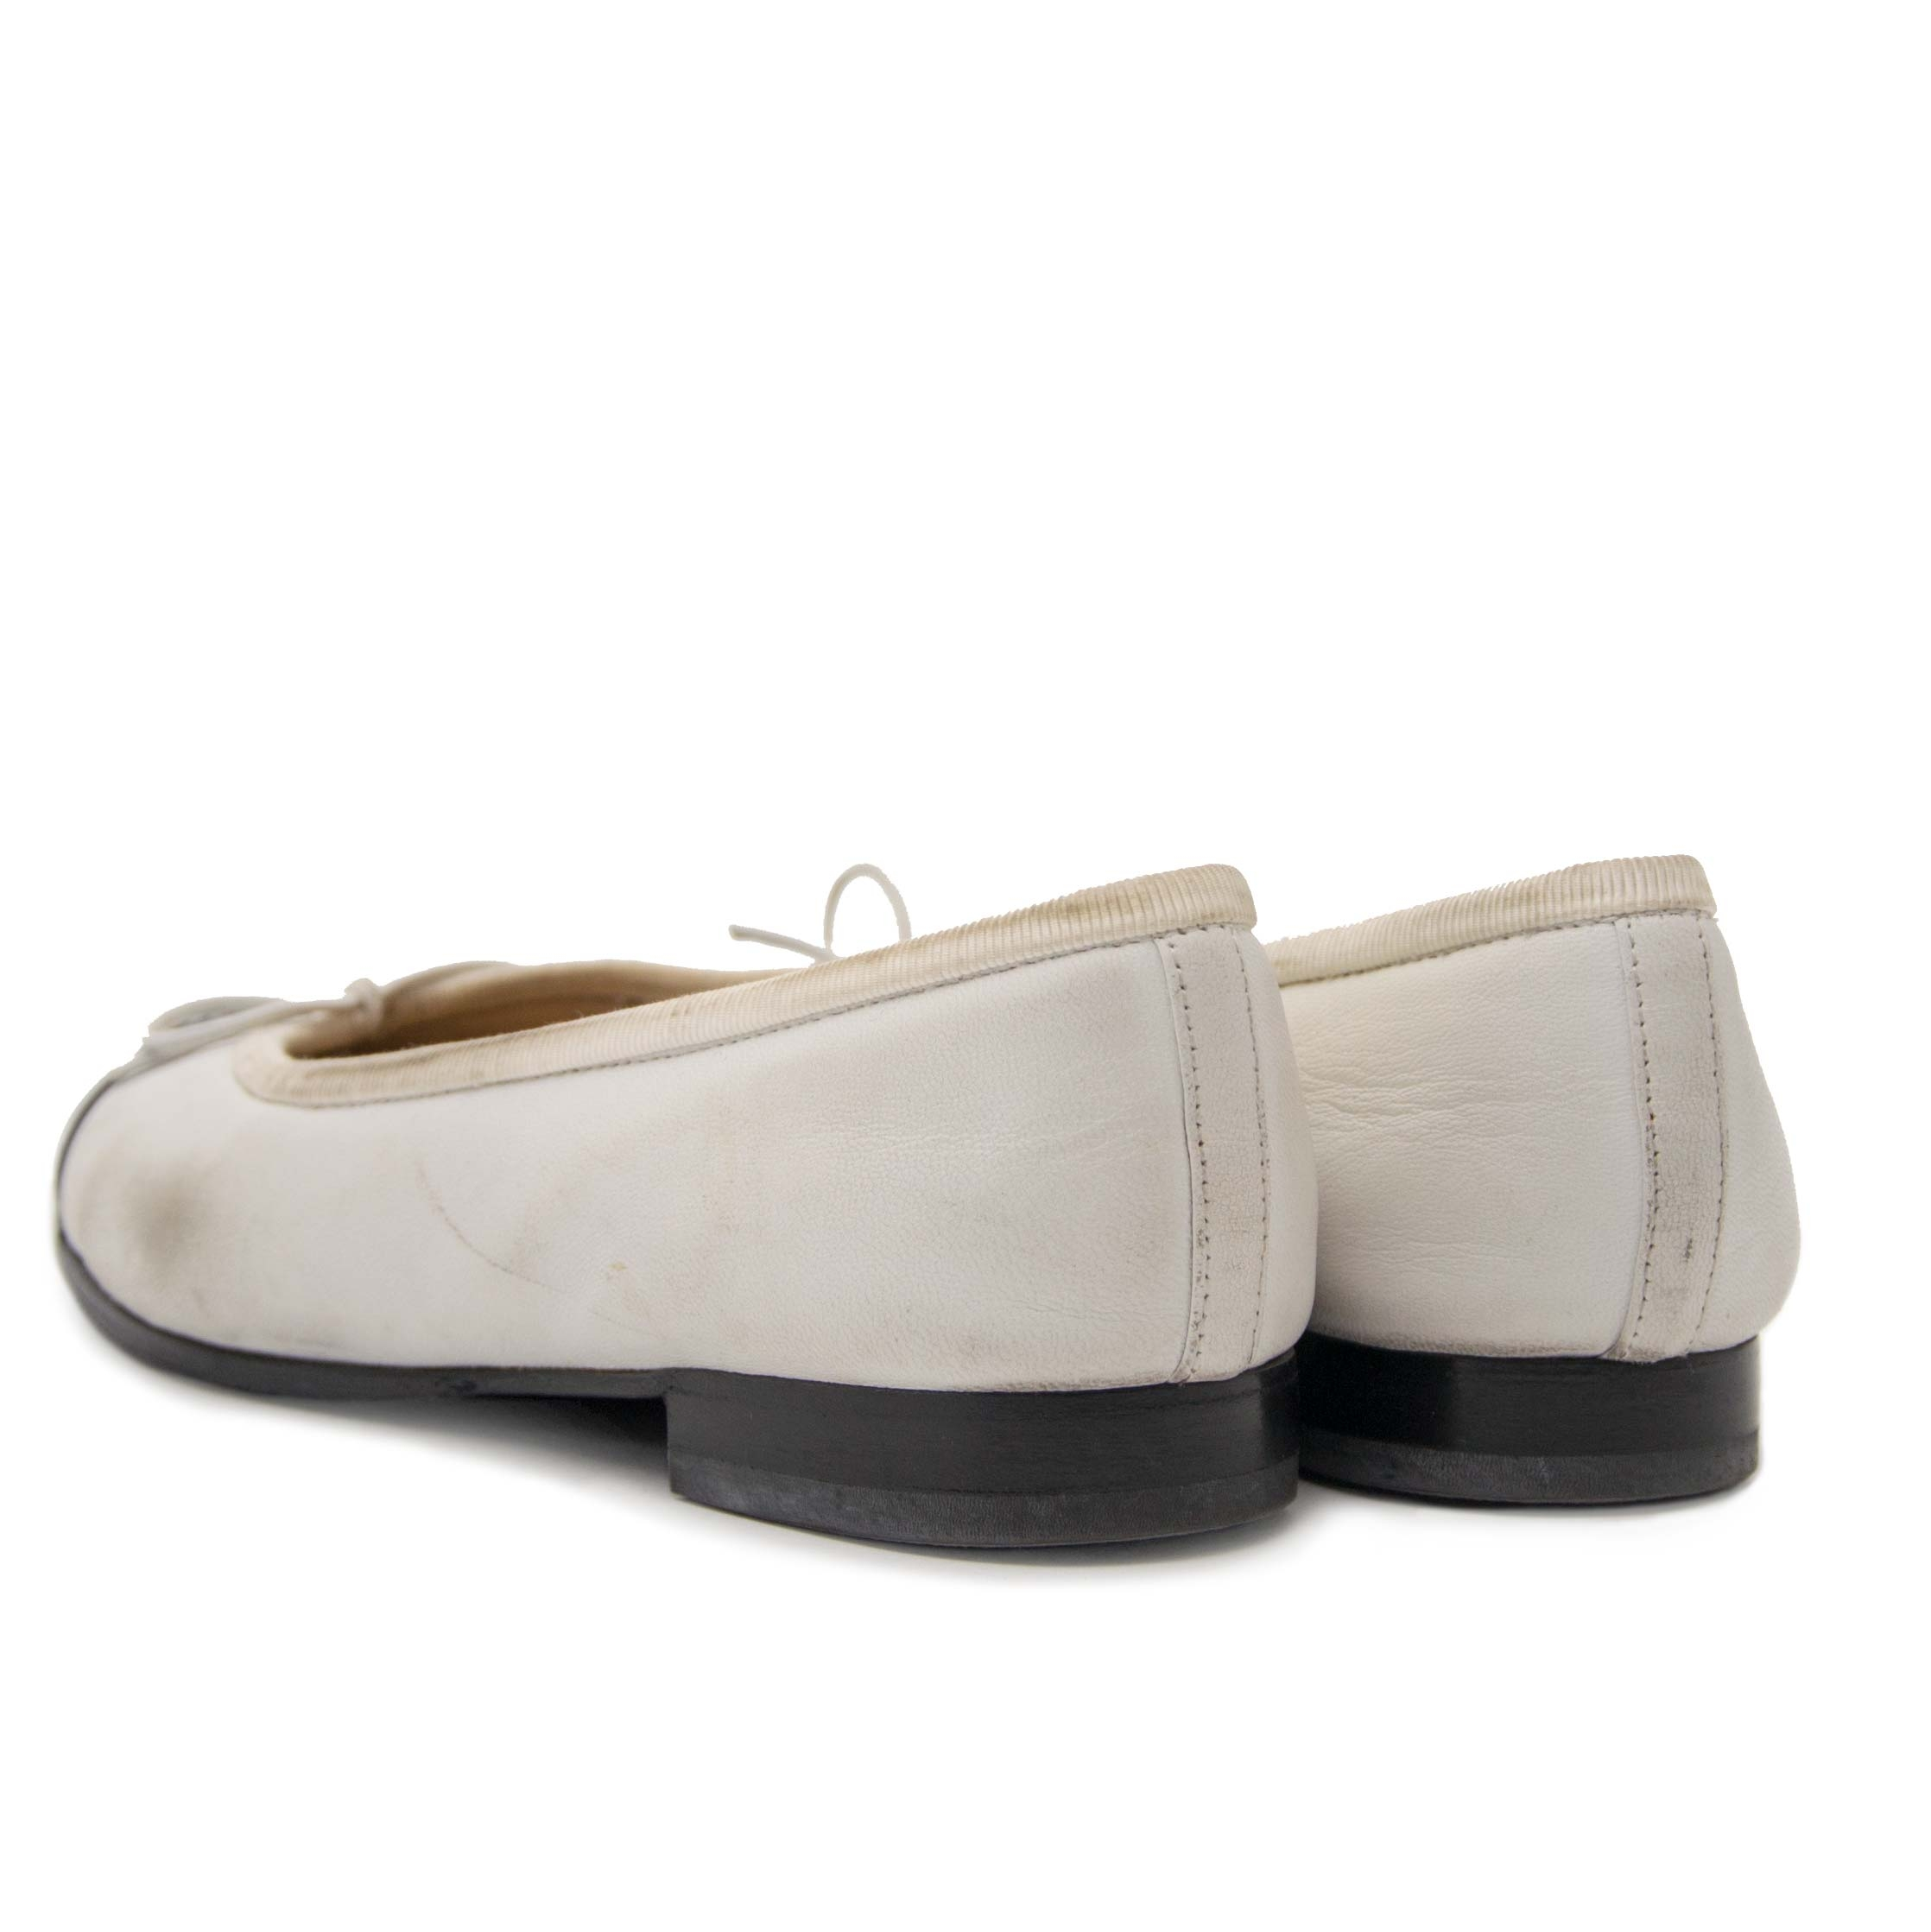 Chanel White & Black Ballet Flats - Size 35 Buy authentic designer Chanel secondhand shoes flats ballerinas at Labellov at the best price. Safe and secure shopping. Koop tweedehands authentieke Chanel schoenen bij designer webwinkel labellov.